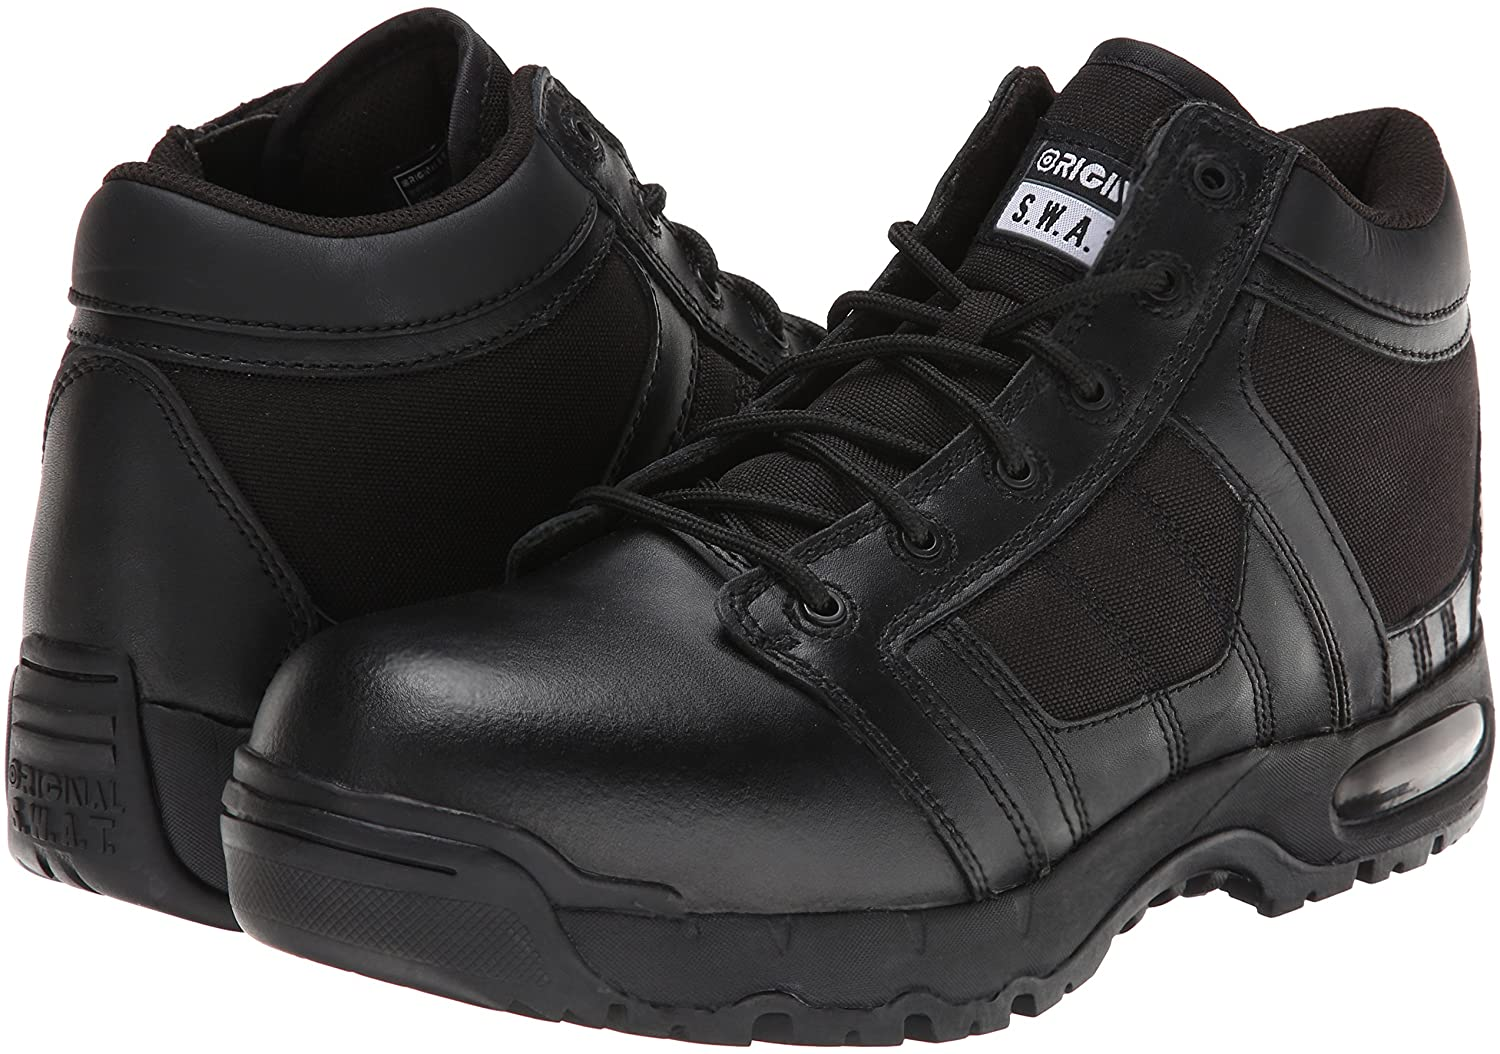 Original S.W.A.T. Men's Metro Work Boots for EMT workers have the best value.